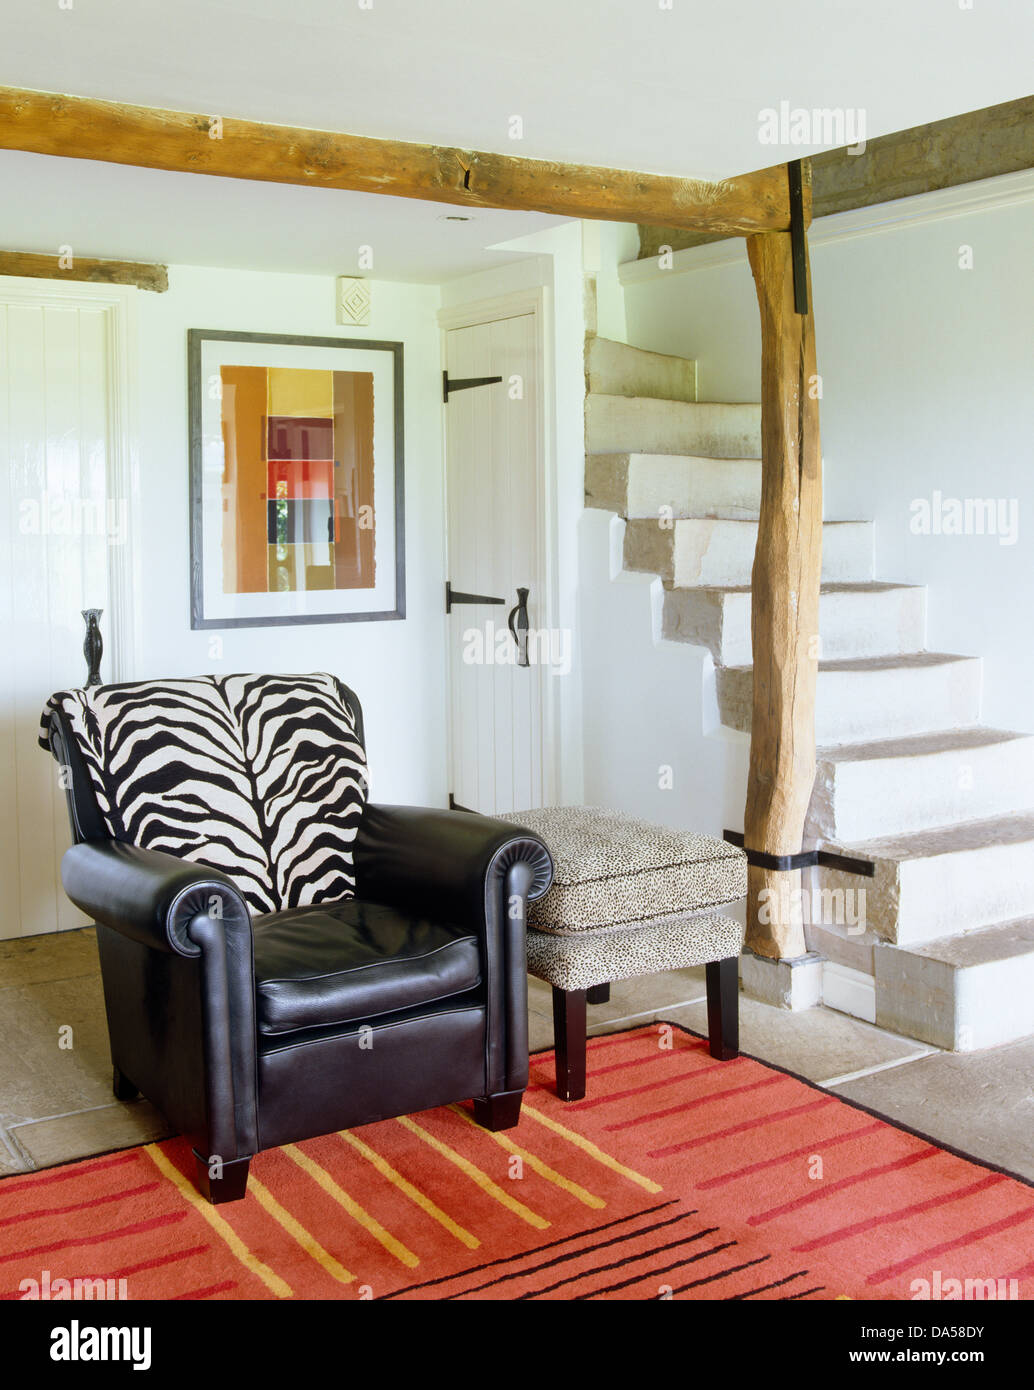 Zebra Print Cushion On Black Leather Armchair In Contemporary Cottage Hall  With Red Rug And Stone Stairs